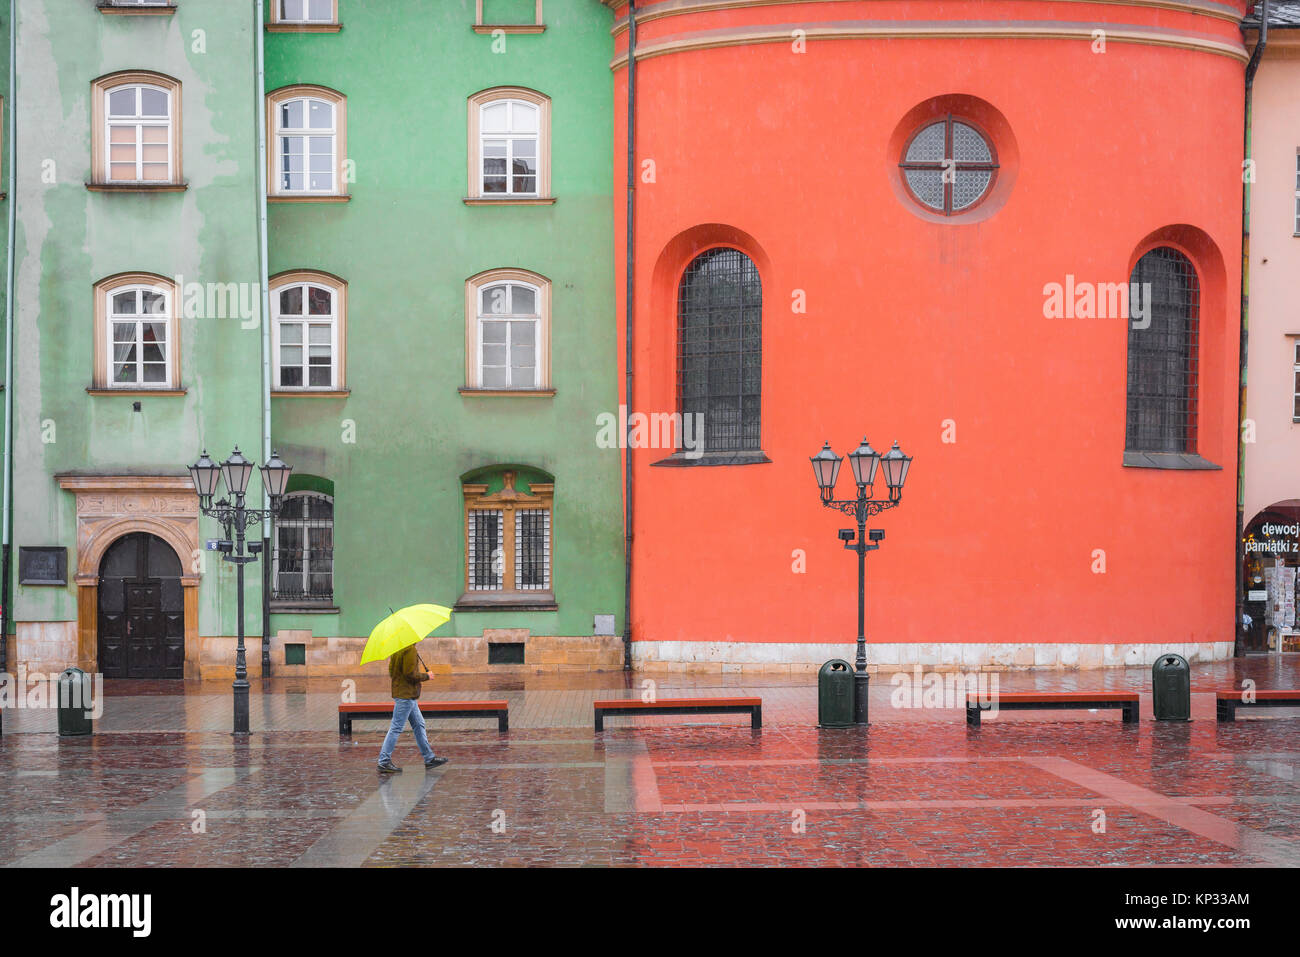 Man rain city, a man sheltering under a yellow umbrella walks past a row of colourful baroque buildings in Little - Stock Image